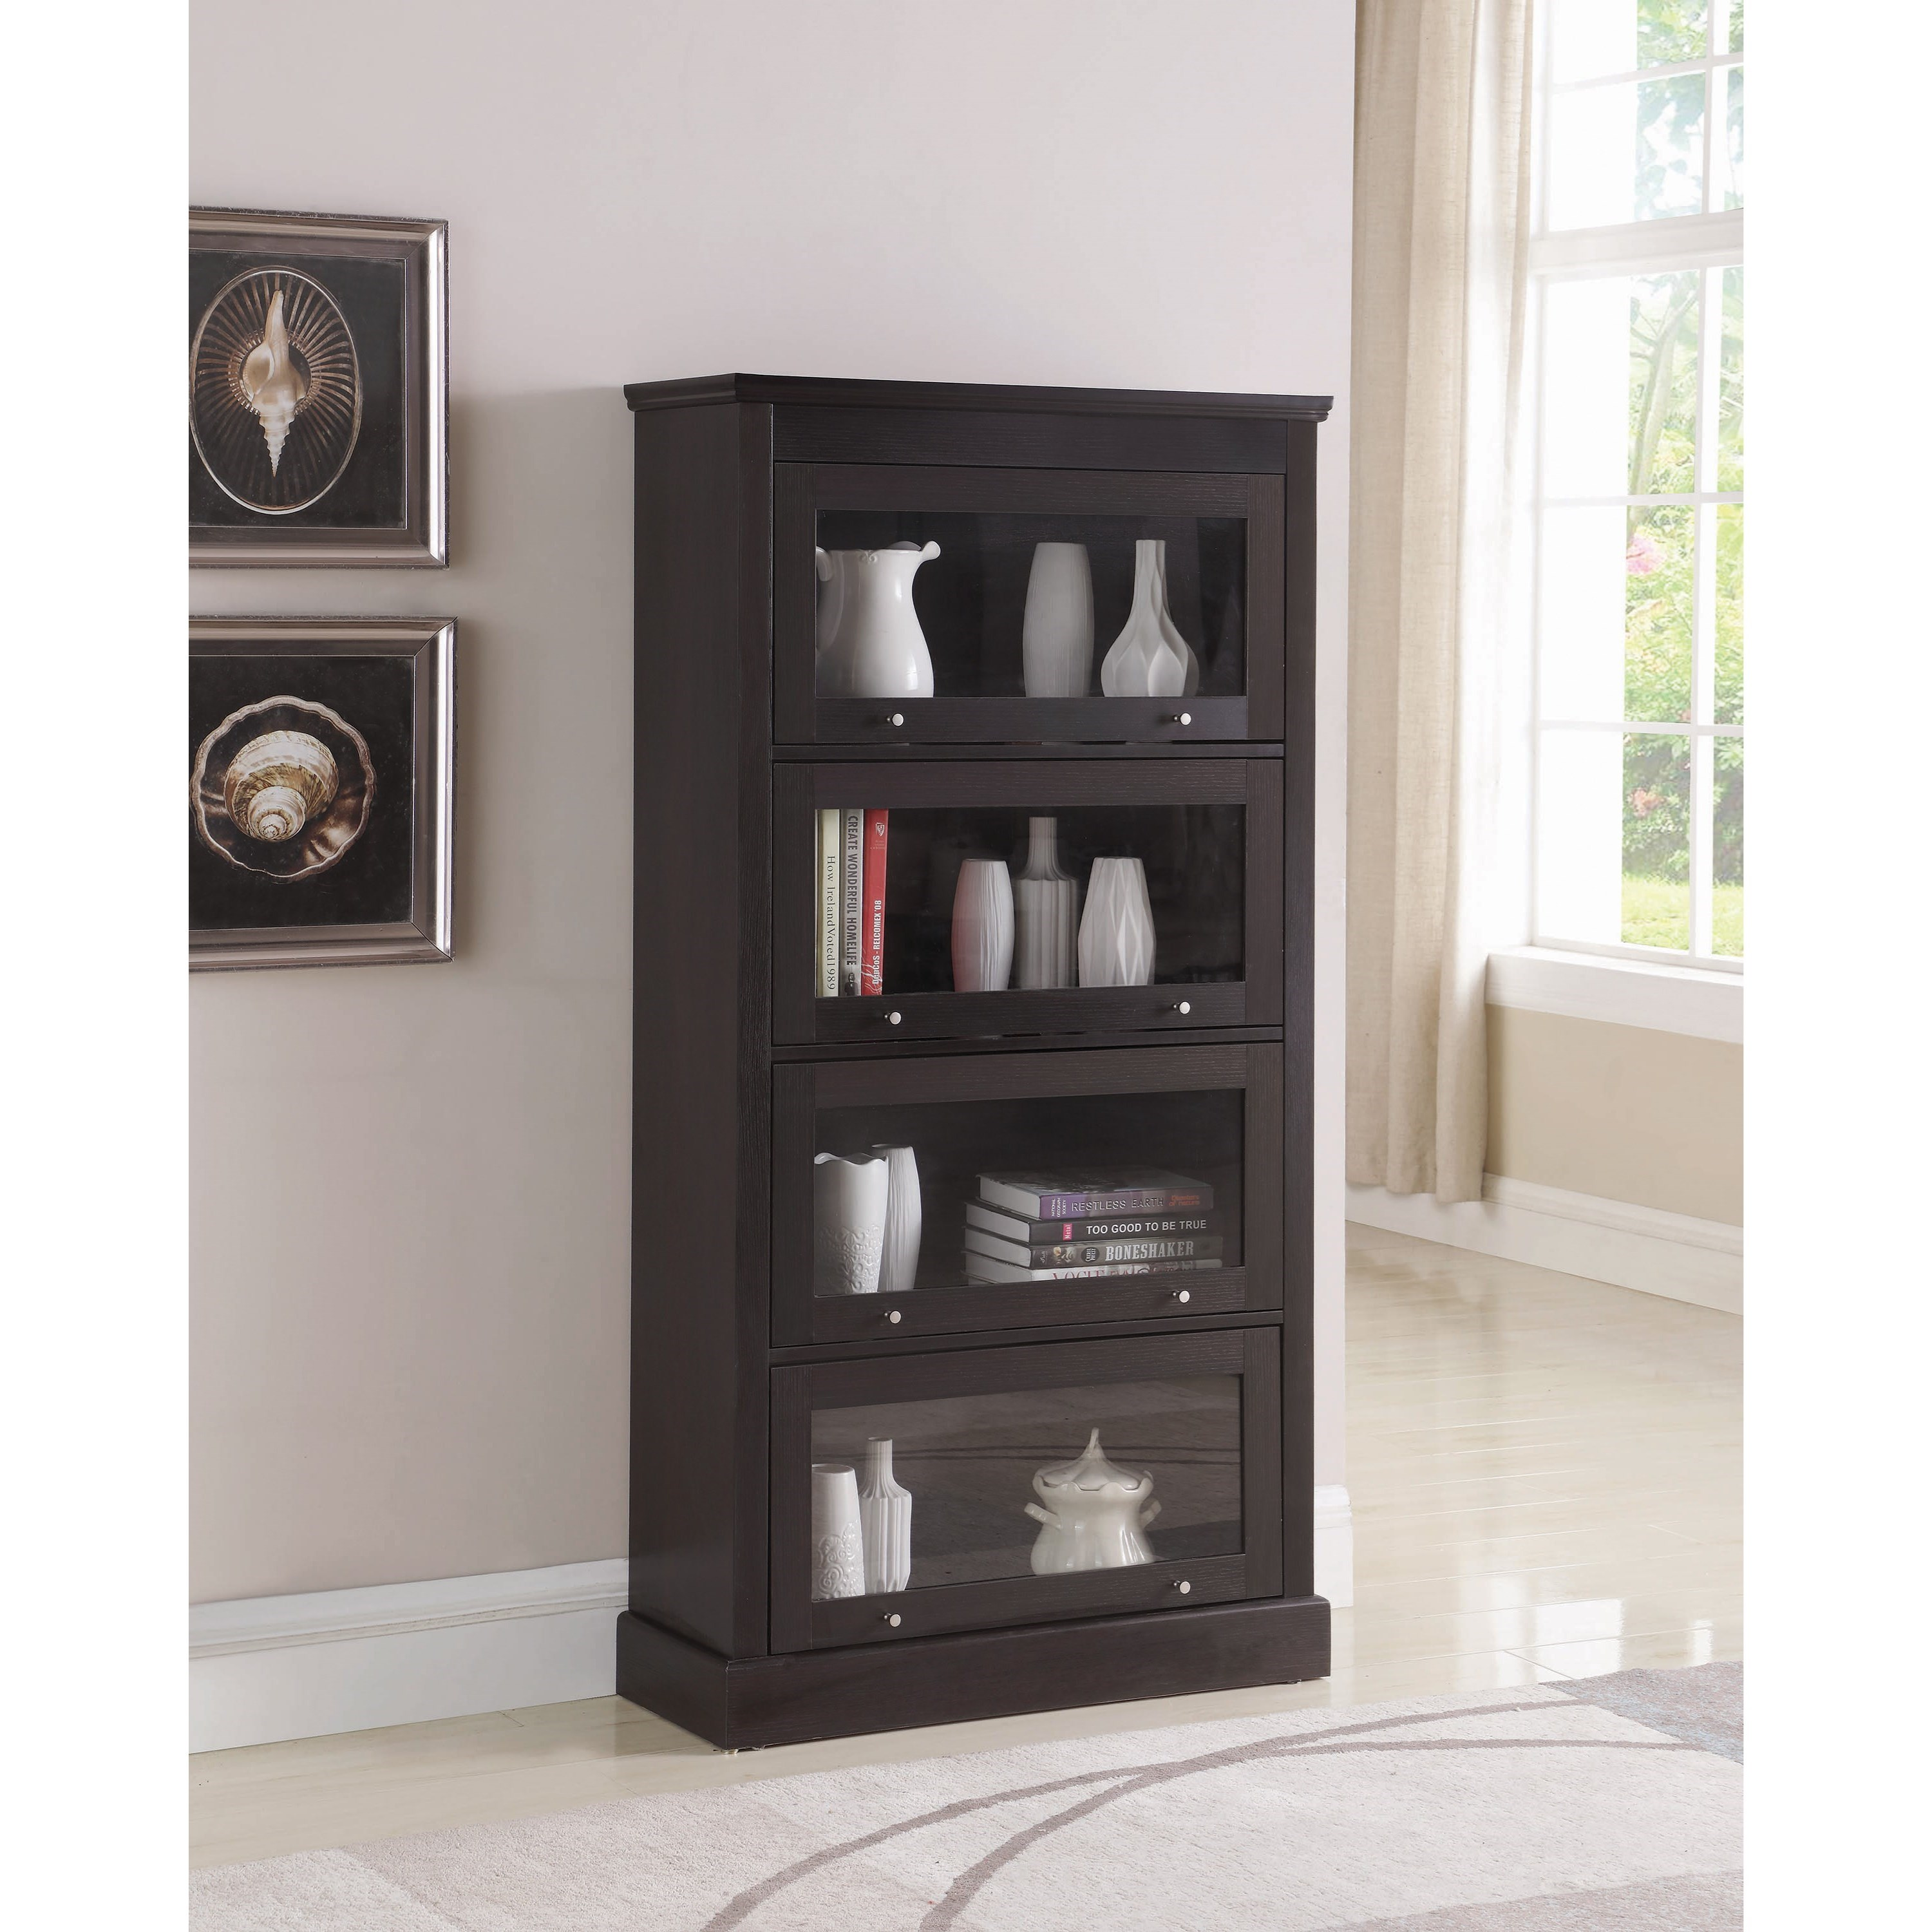 Coaster Accent Cabinets 802588 Transitional Bookcase With Tempered